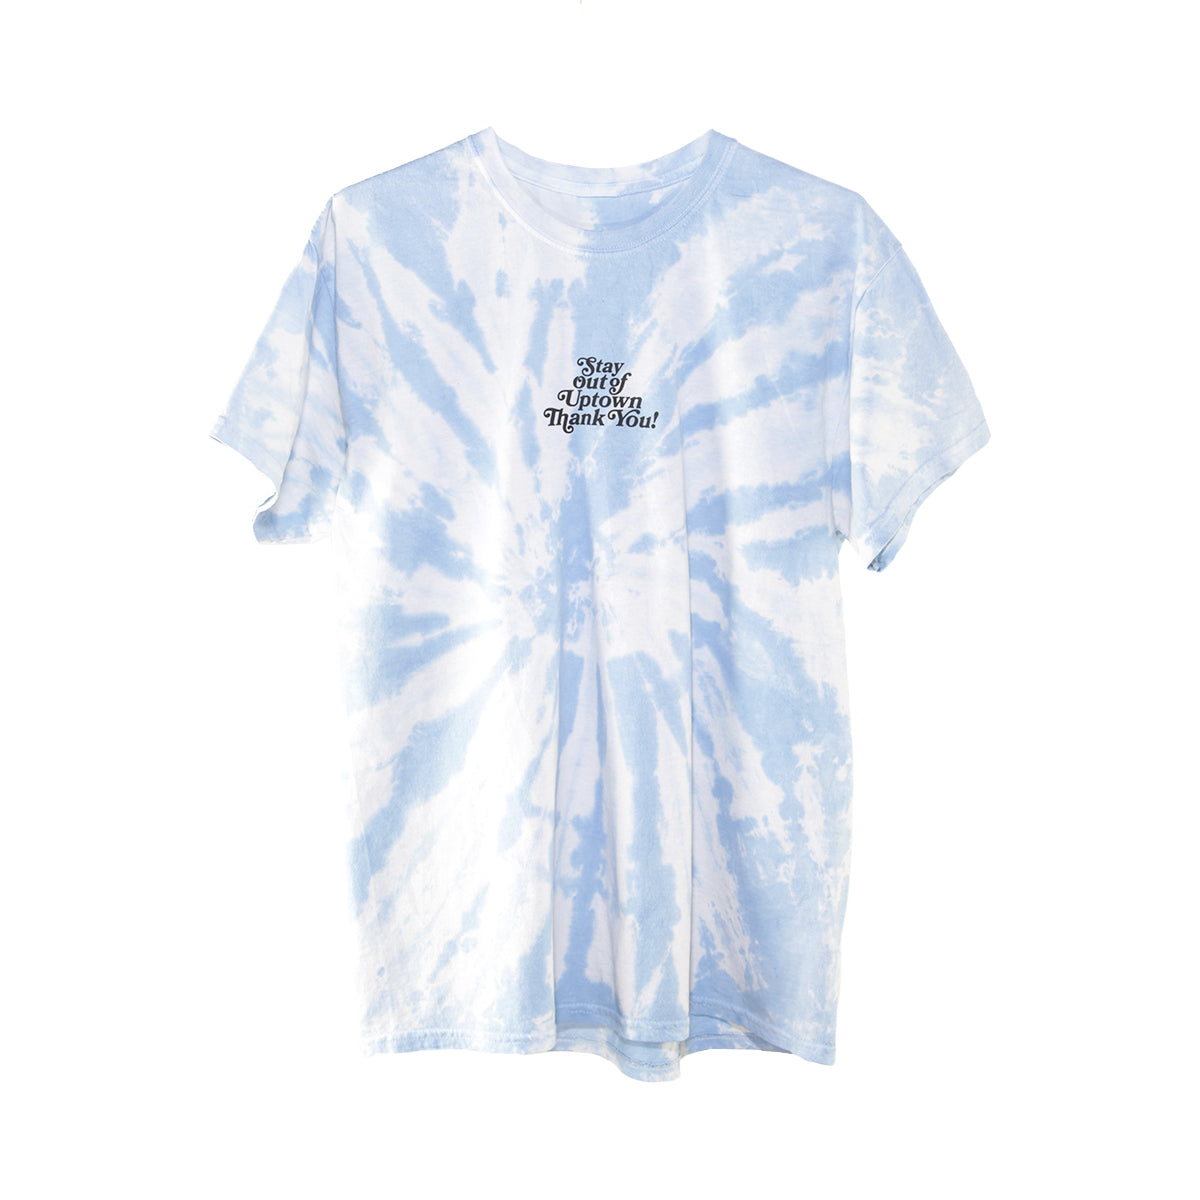 Stay Out of Uptown Tie Dye - Twisted Caroline Blue